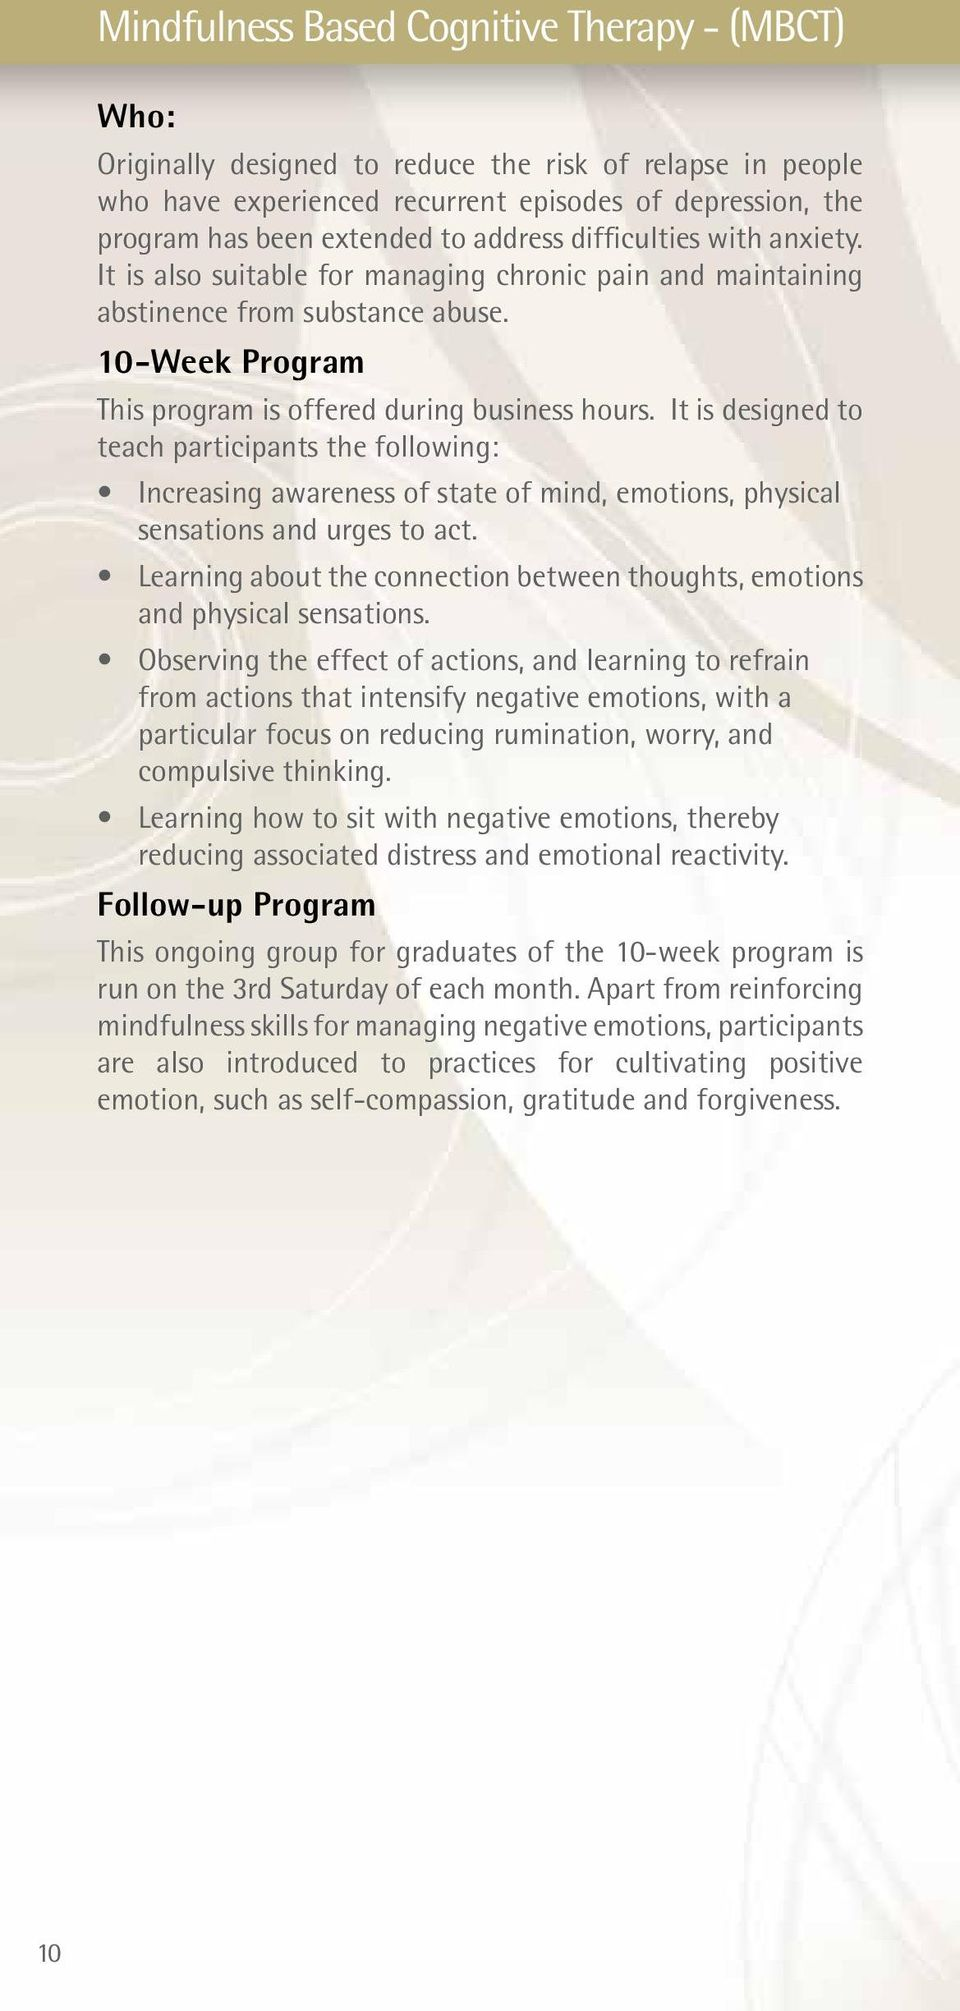 It is designed to teach participants the following: Increasing awareness of state of mind, emotions, physical sensations and urges to act.